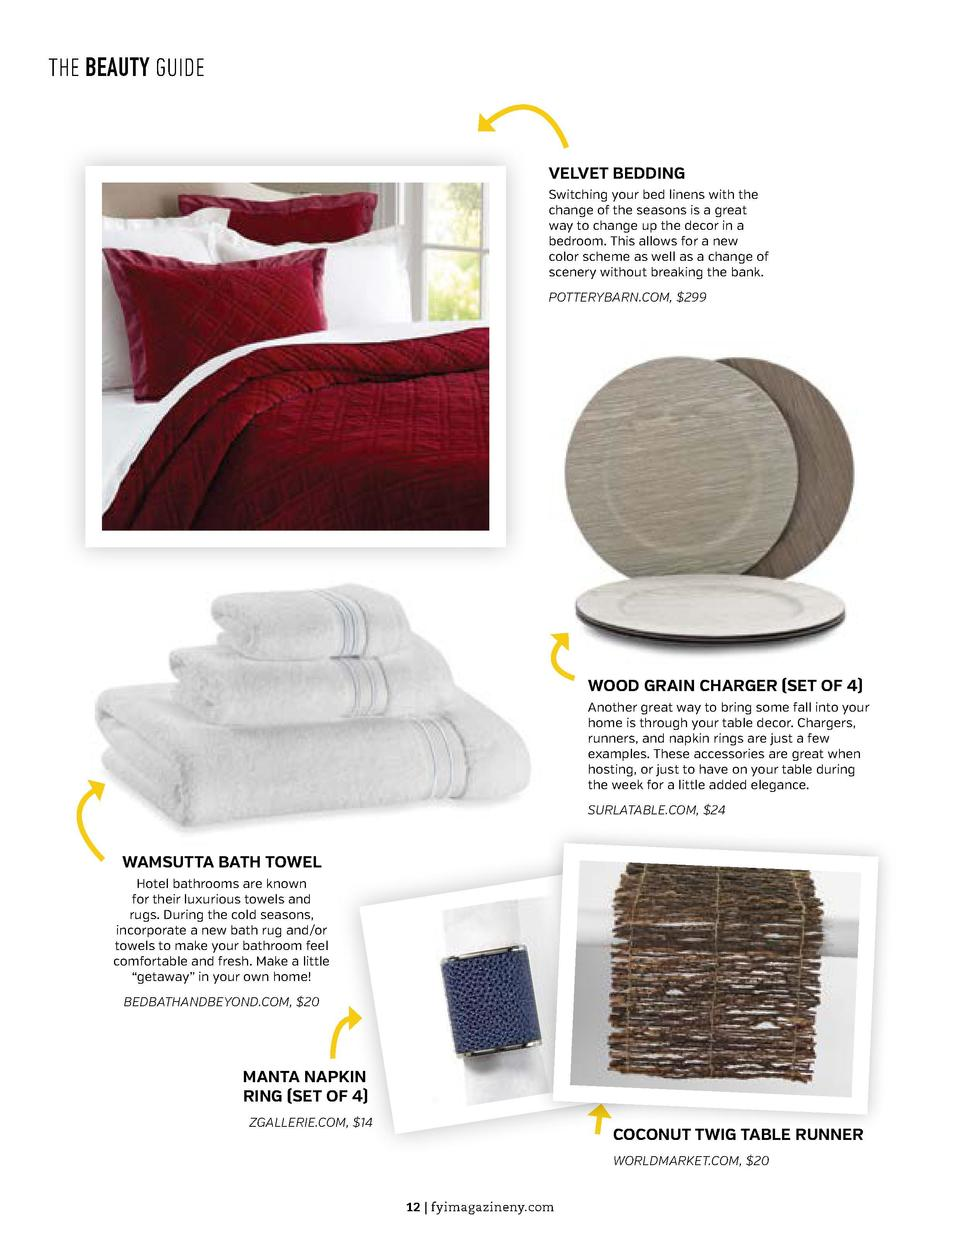 THE BEAUTY GUIDE  THE BEAUTY GUIDE  VELVET BEDDING Switching your bed linens with the change of the seasons is a great way...